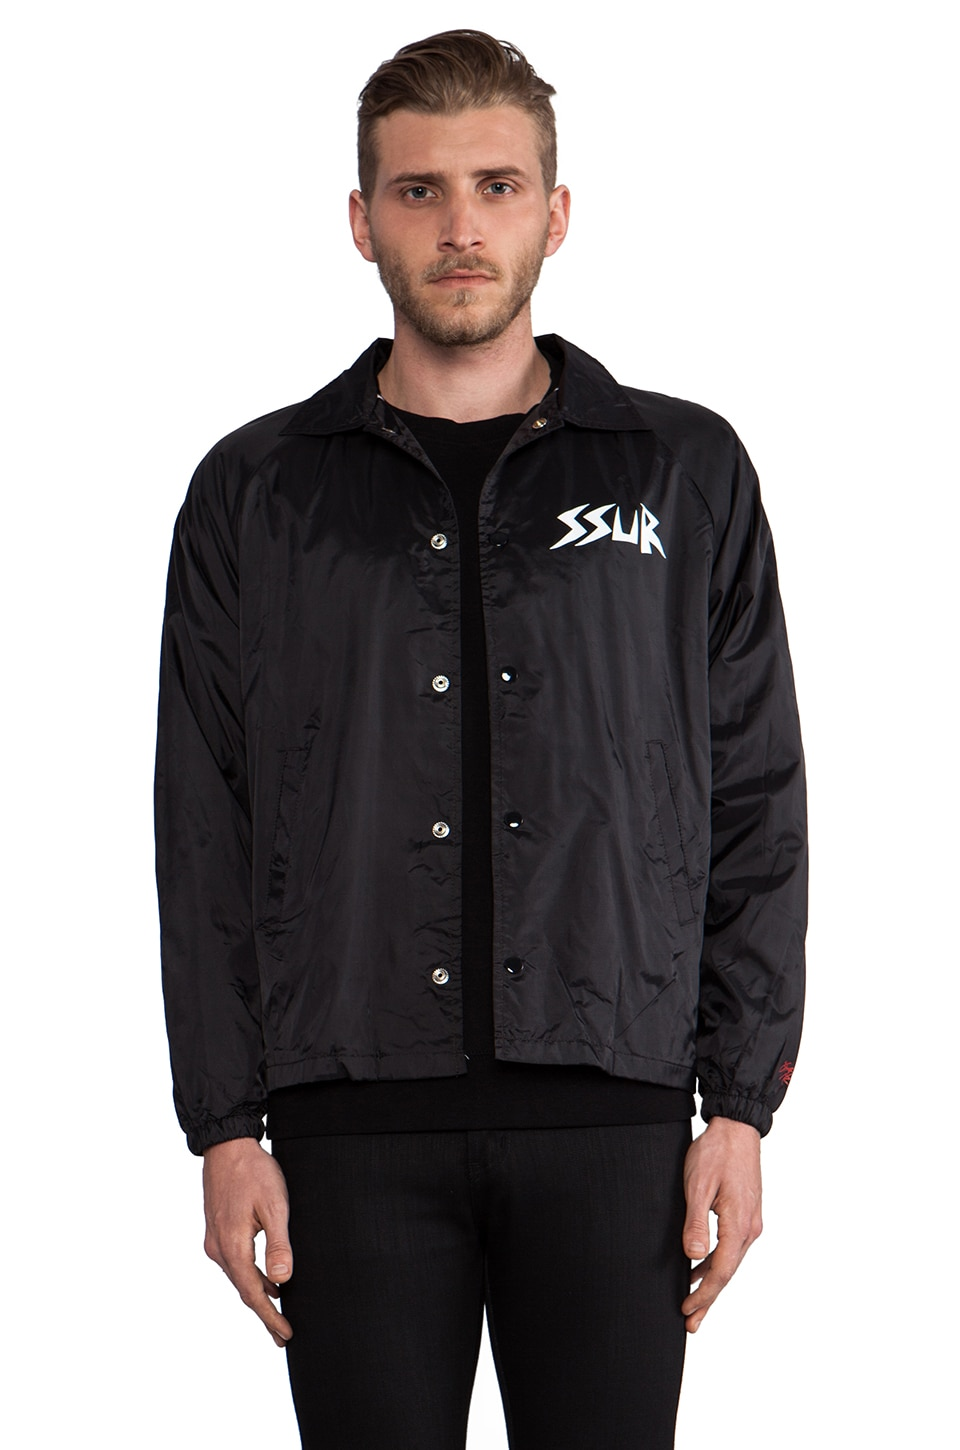 SSUR Tendencies Coach Jacket in Black